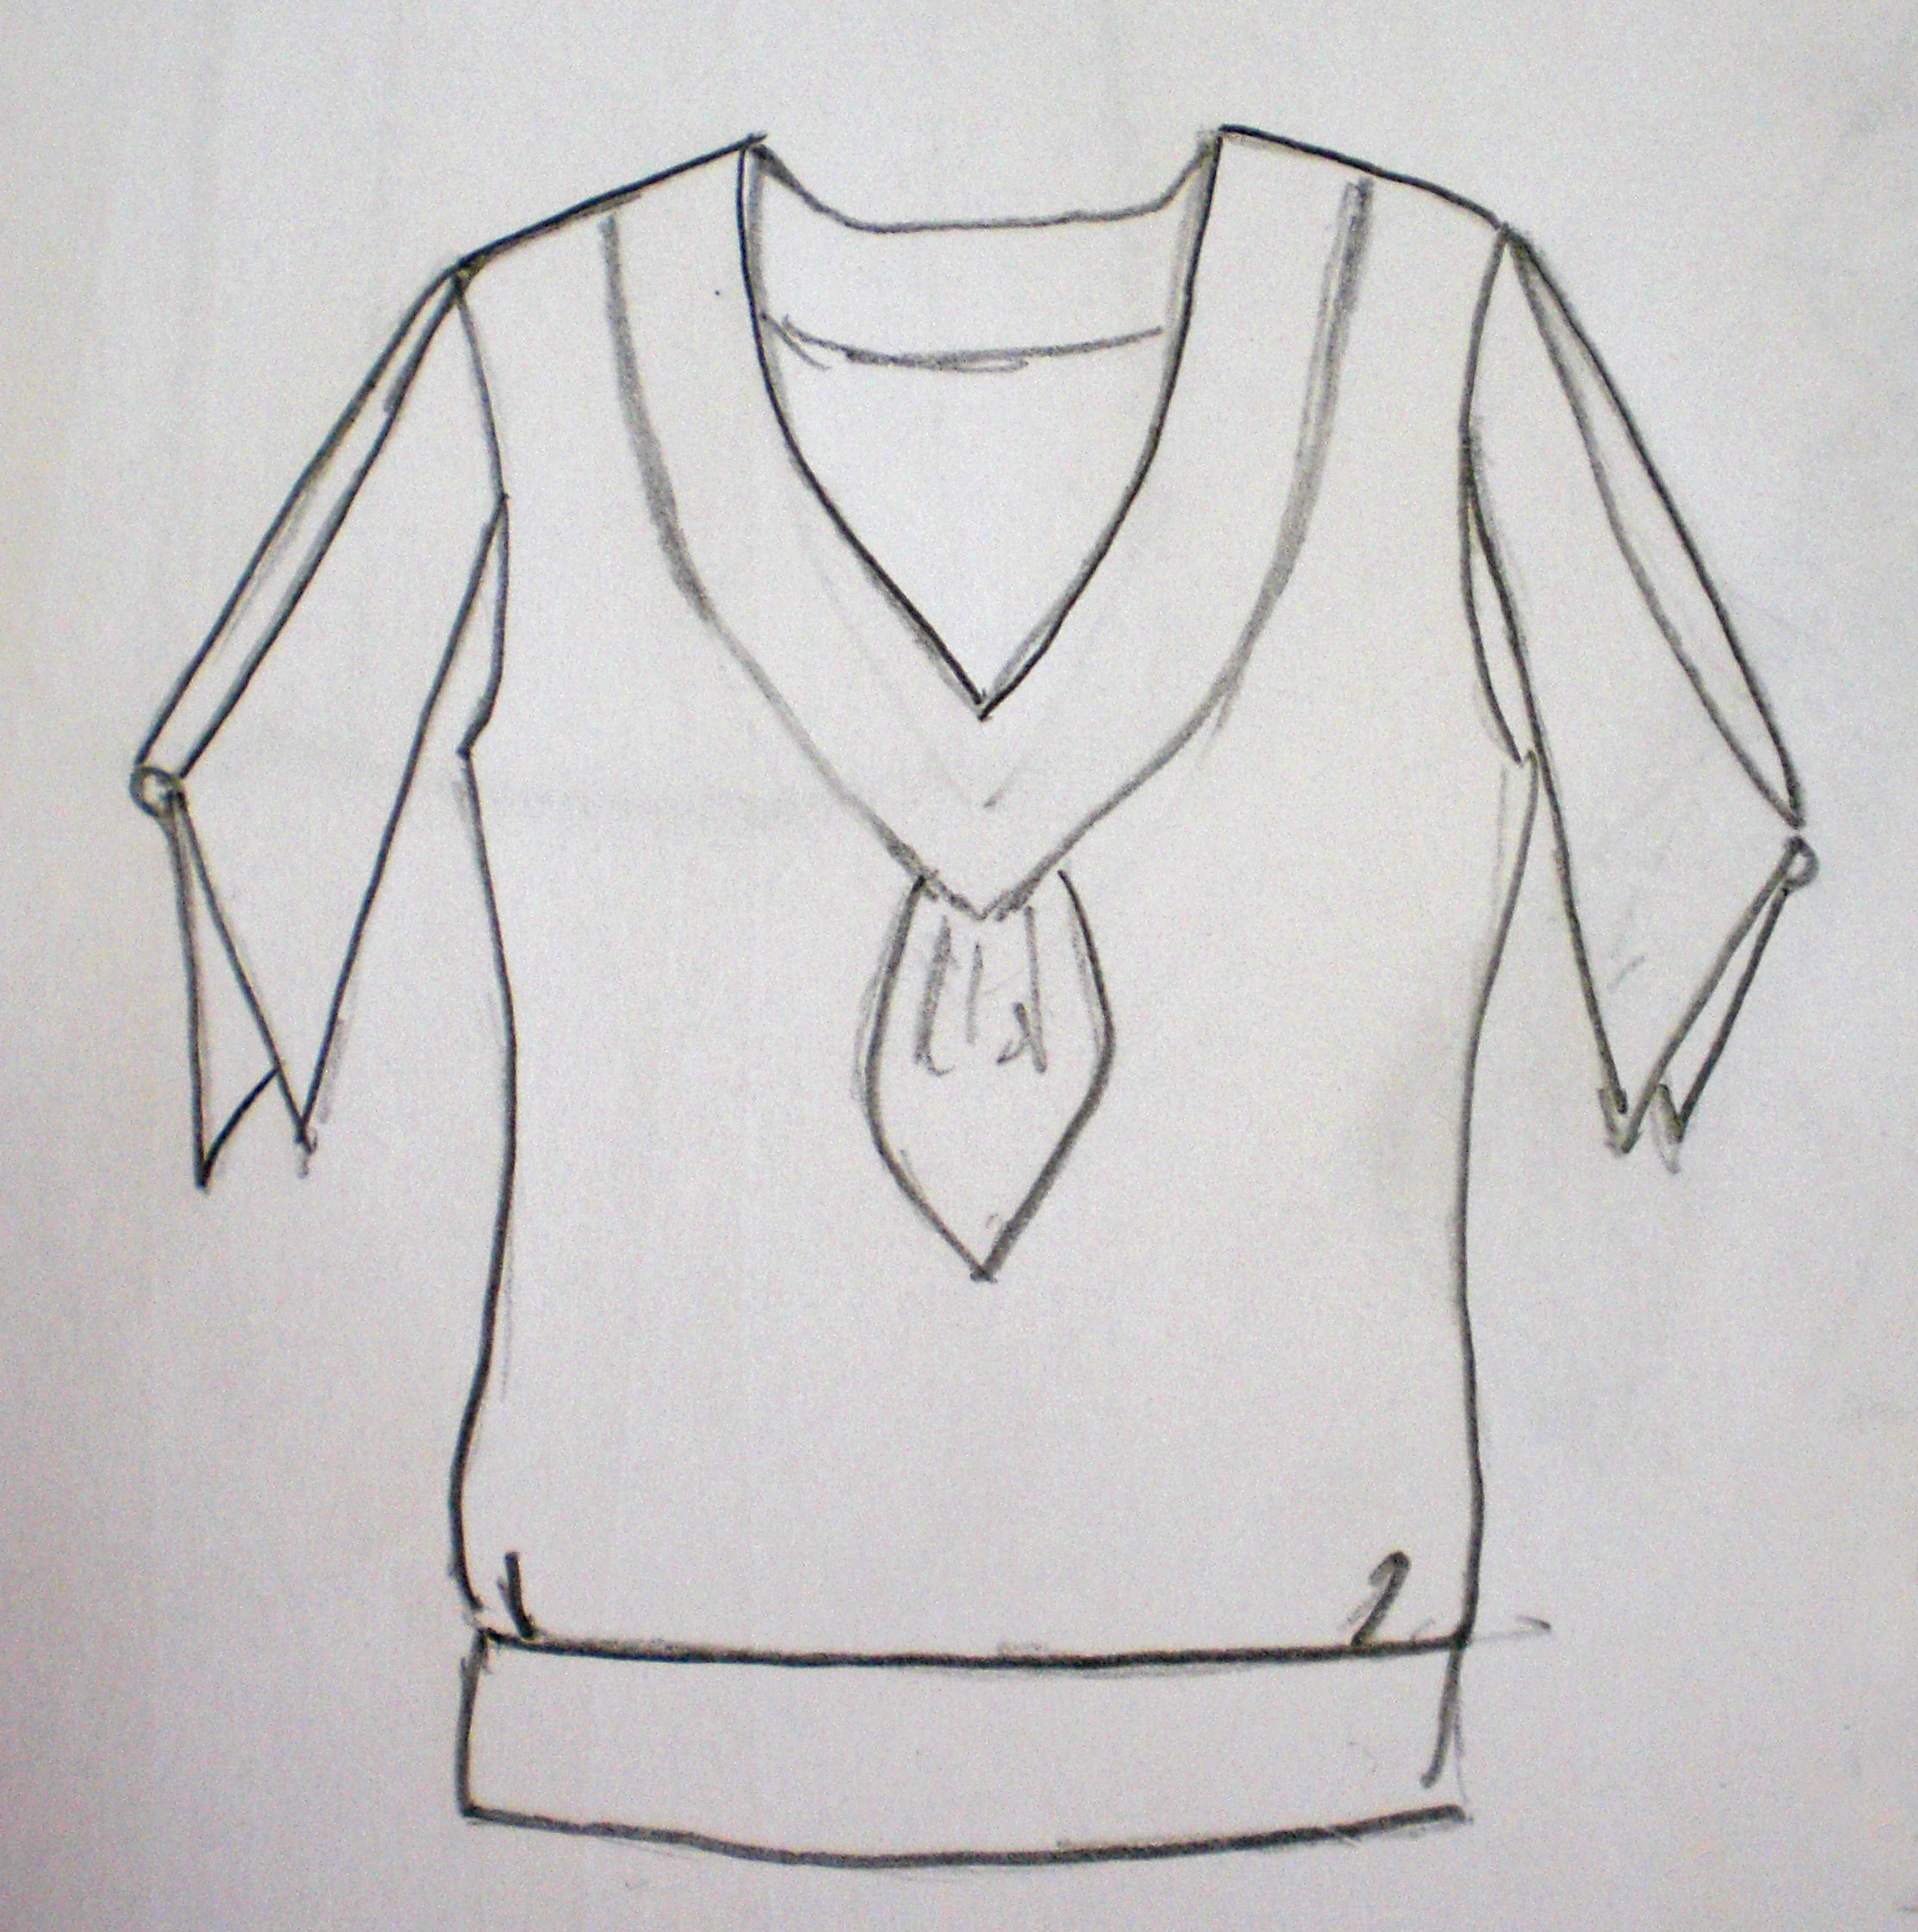 I sketched this after watching Series 2 episode 3 (Dead Man's Chest). I remember more clearly about this blouse after listening to  The Miss Fisher Philes podcast  where they discuss this episode, making reference to Miss Fisher wearing more separates than dresses in the episode.